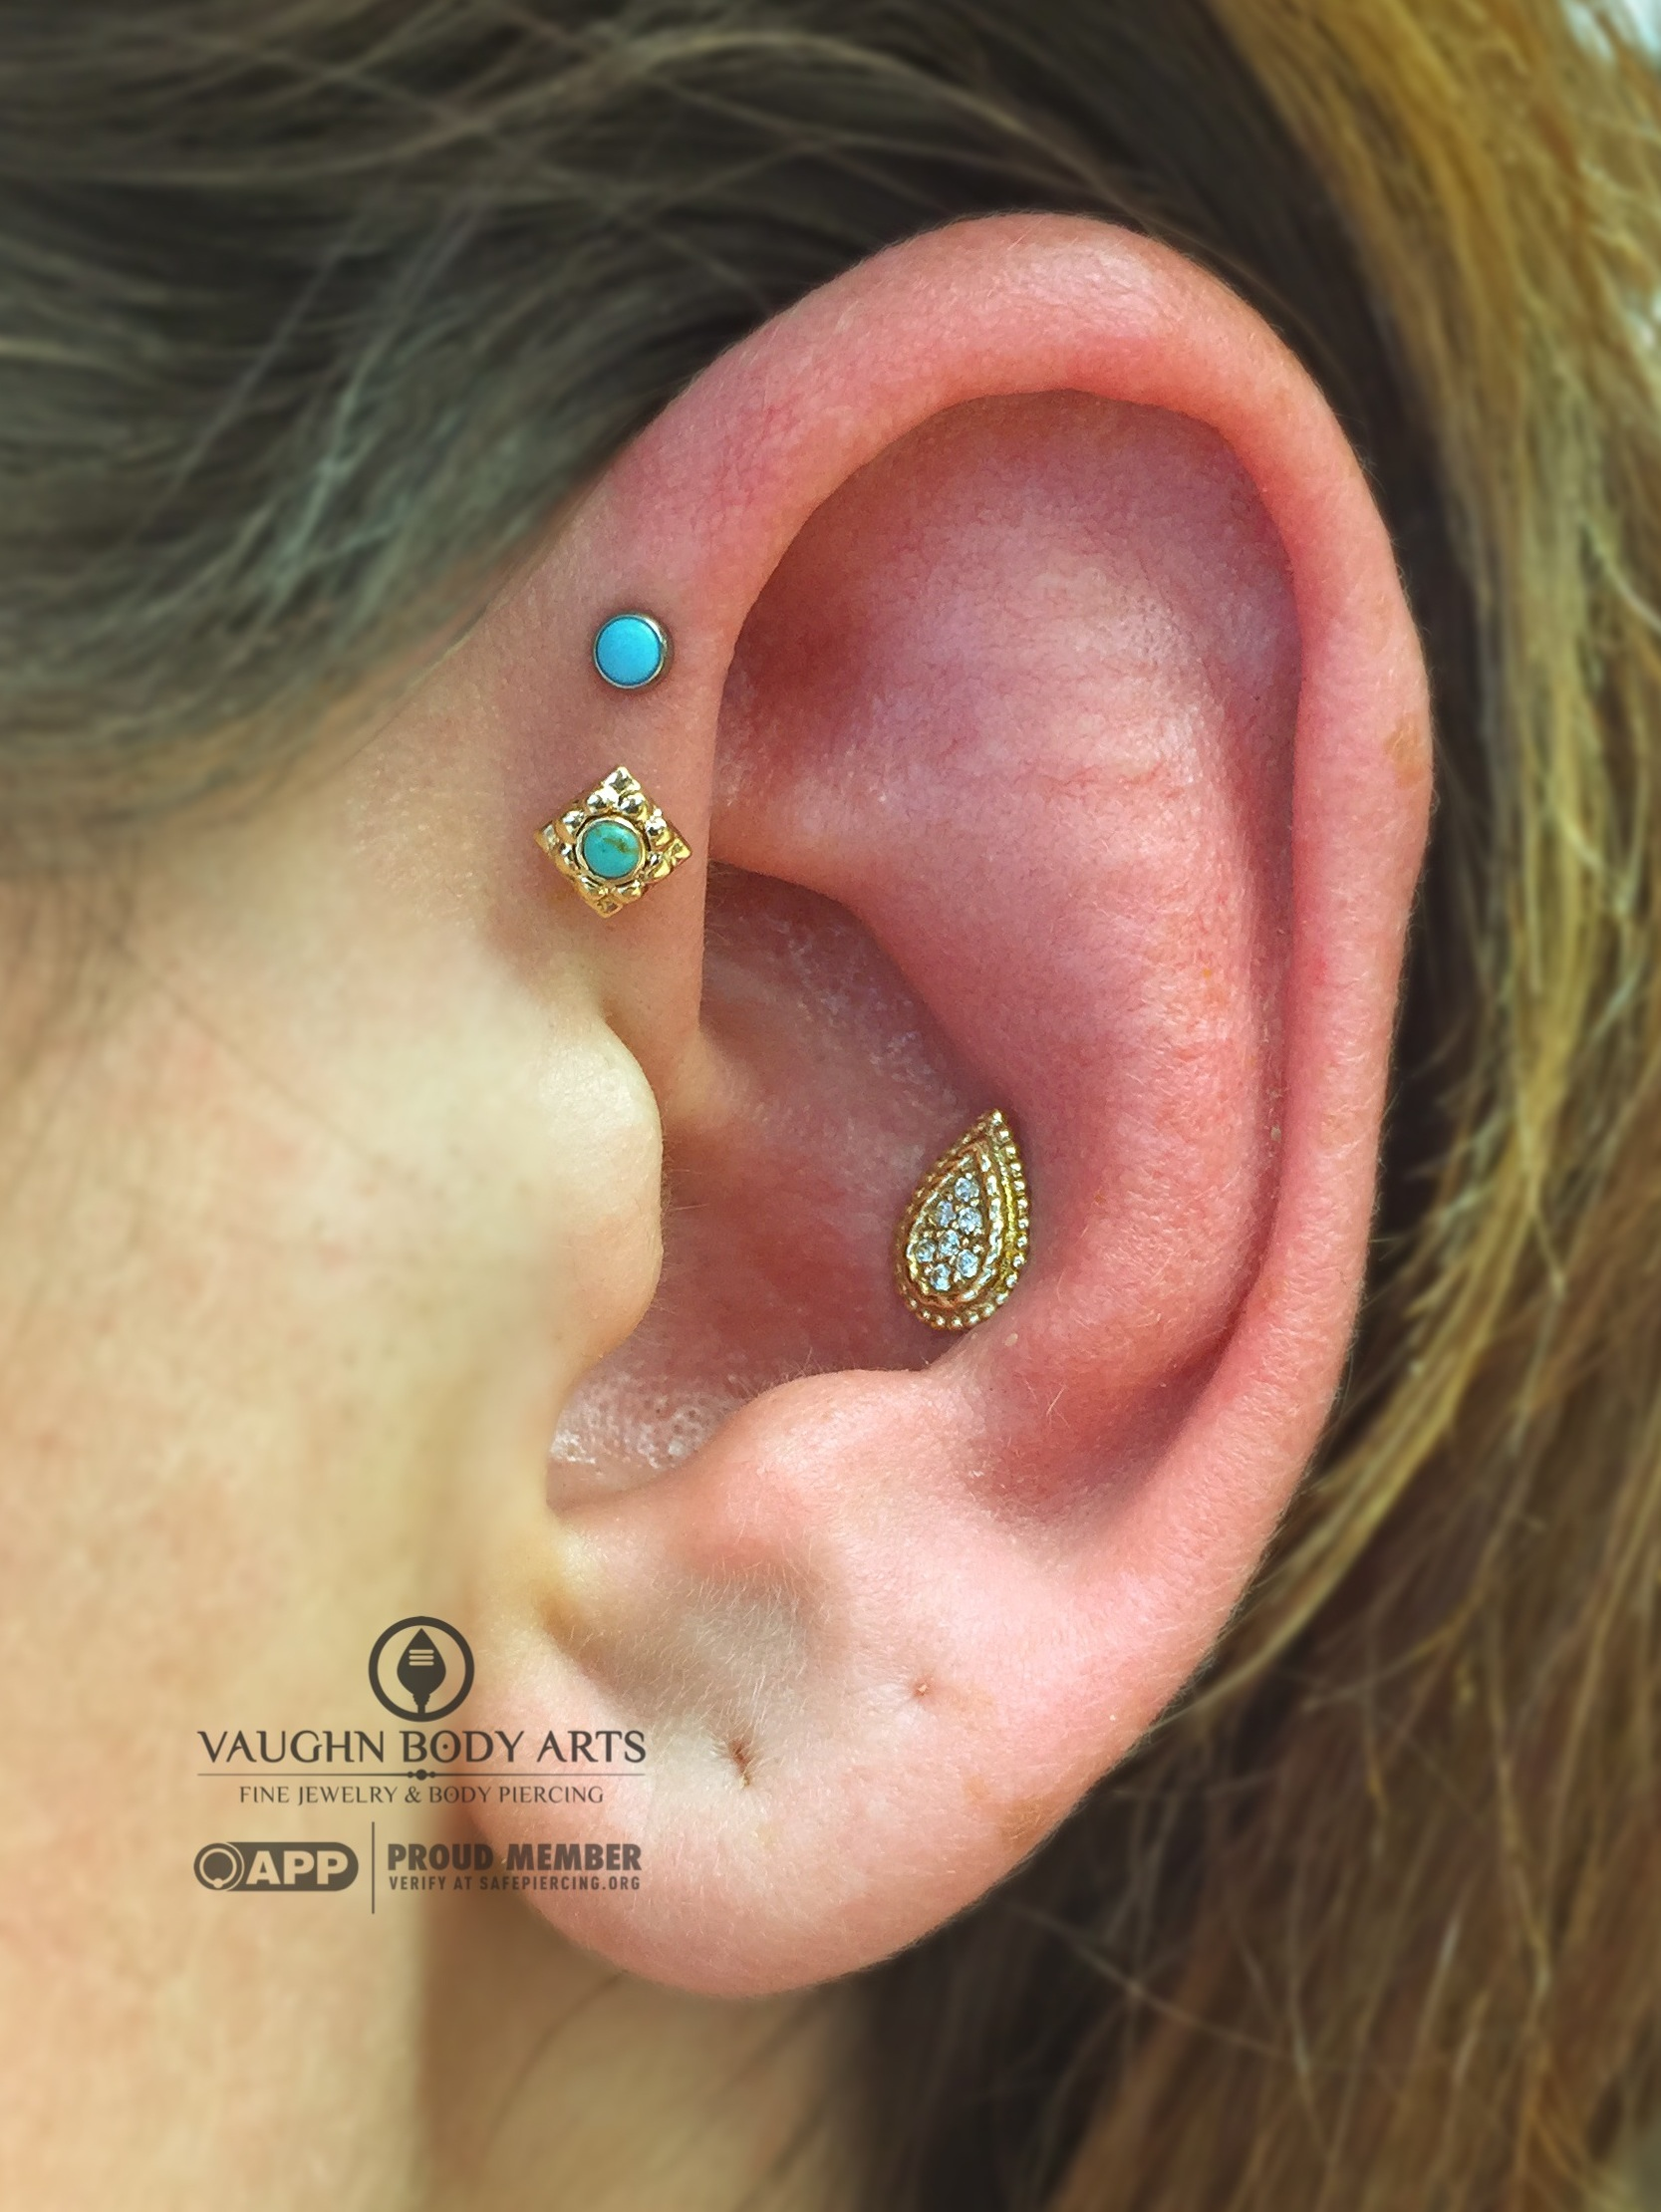 """Double forward helix piercing with an 18k yellow gold """"Kira"""" end from Anatometal and titanium jewelry from NeoMetal. Conch piercing with a 14k yellow gold and cz """"Kendra"""" end from BVLA."""